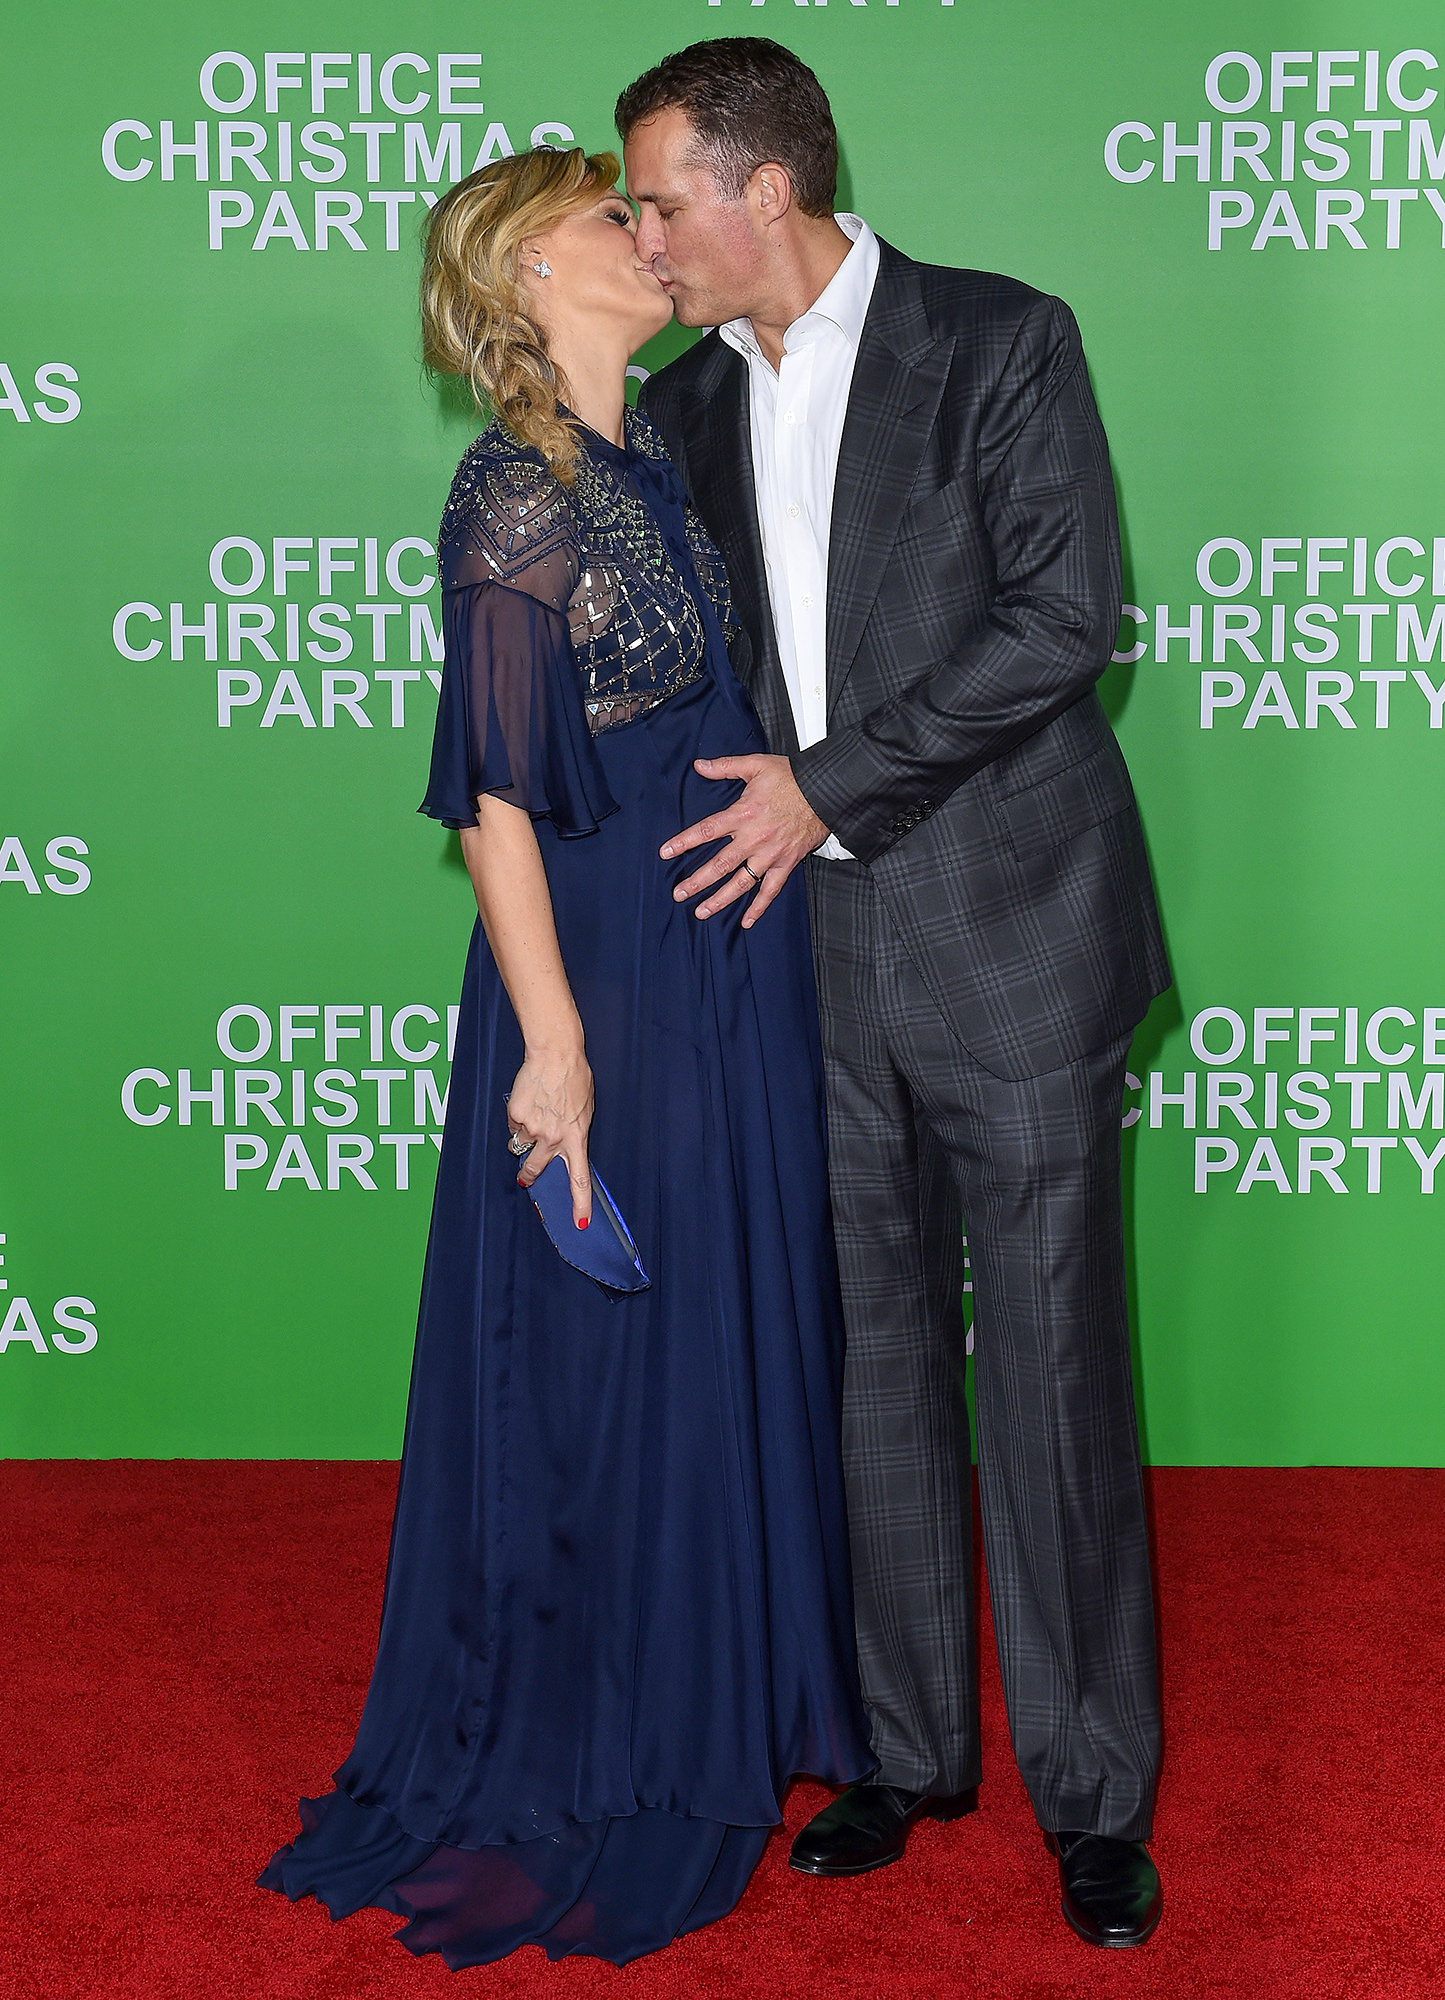 """Arrivals at the """"Office Christmas Party"""" film premiere in Los Angeles"""